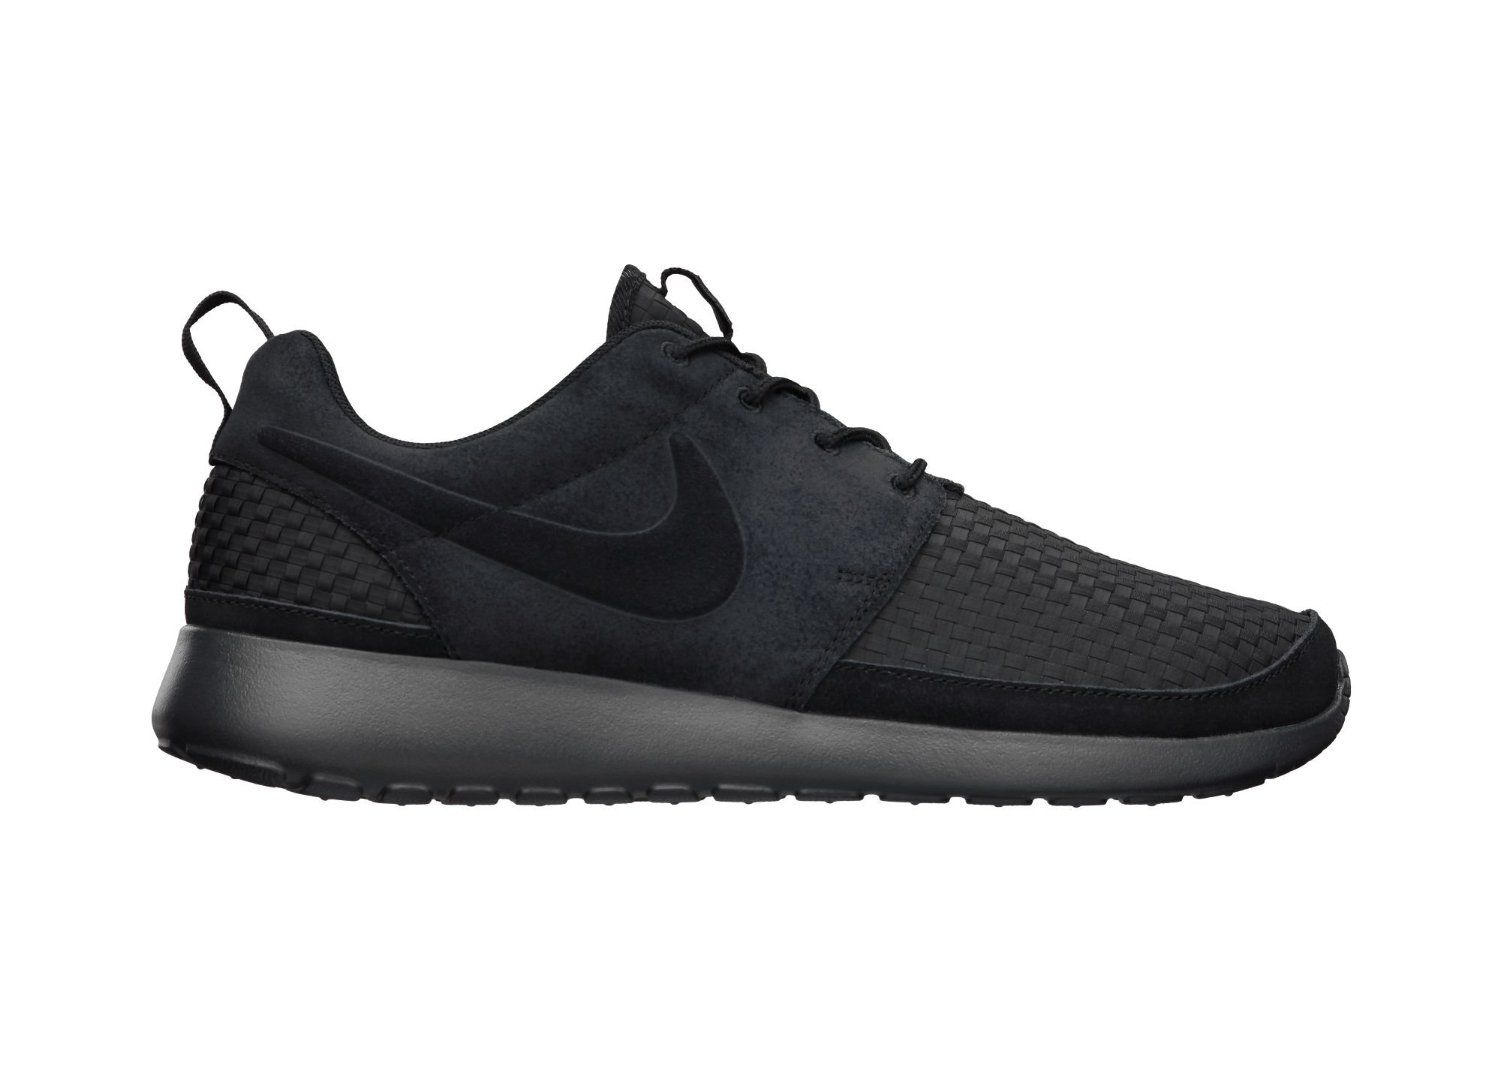 finest selection 93ebb 8d437 ... where can i buy amazon nike mens roshe run woven black 555602 001 shoes  ad727 1367a